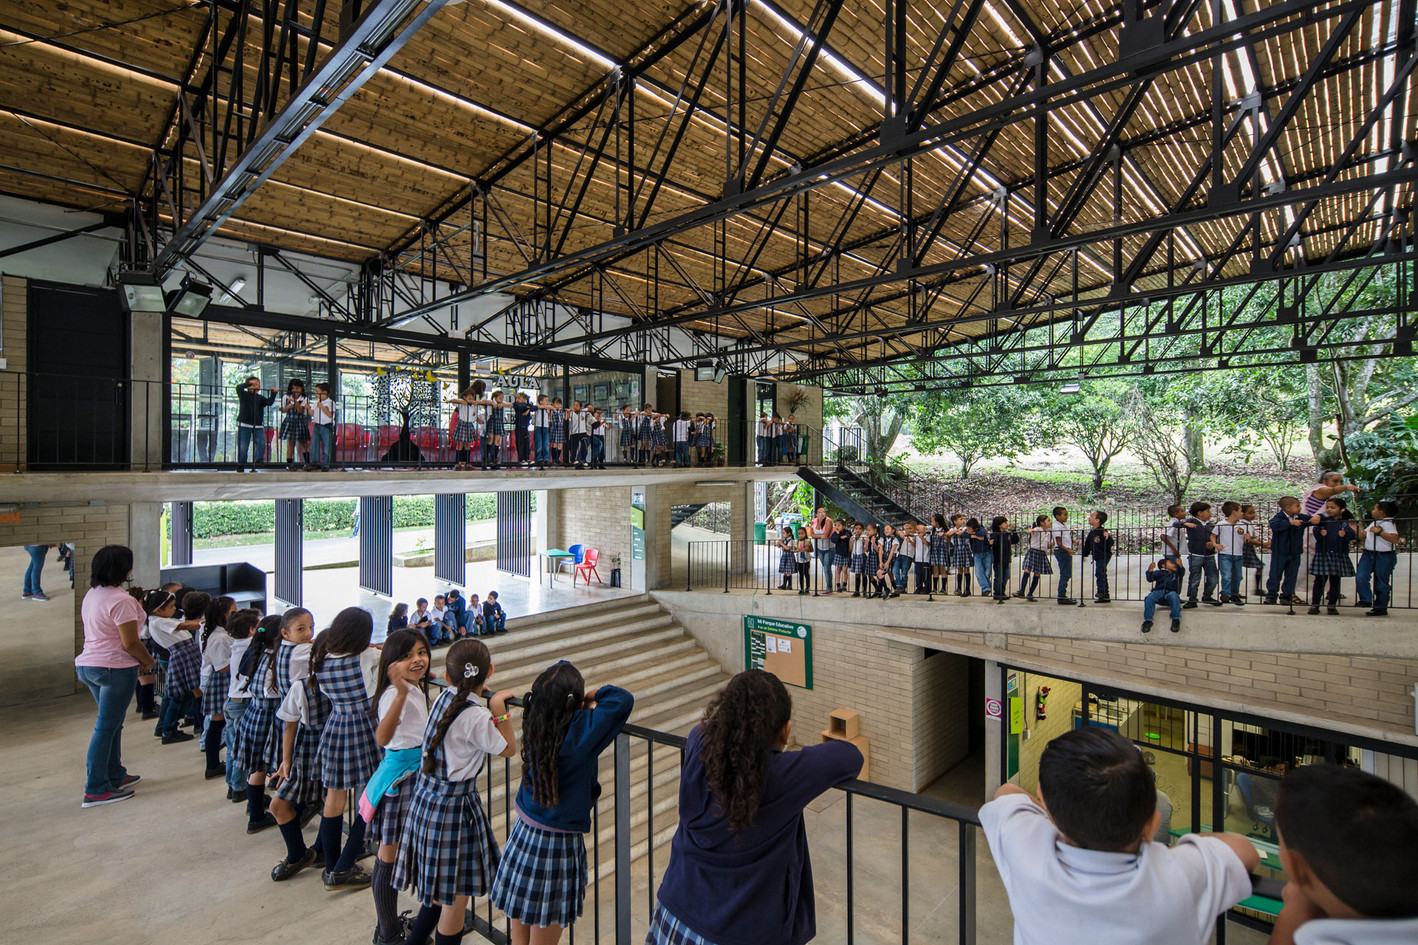 Parque Educativo de Tarso